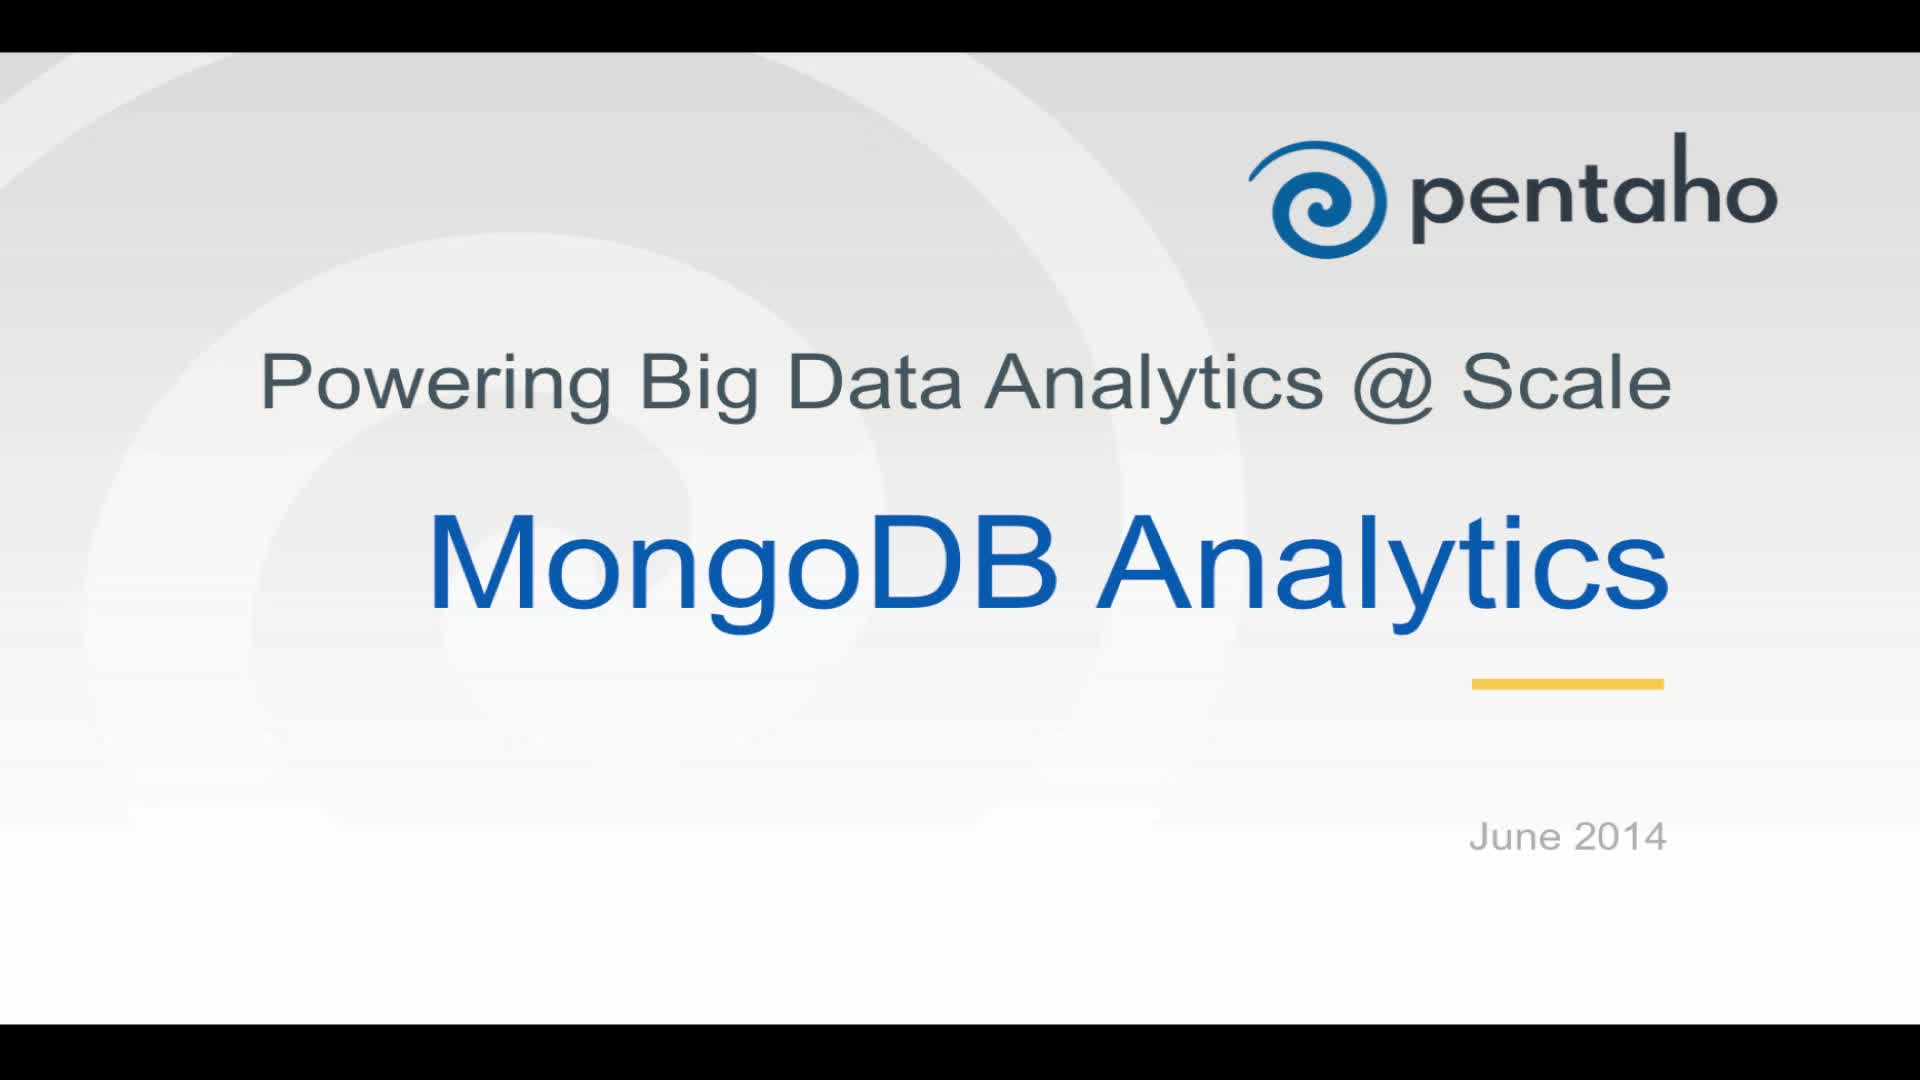 Pentaho Equips Companies to Easily Scale Big Data Operations, Regardless of IT Resources